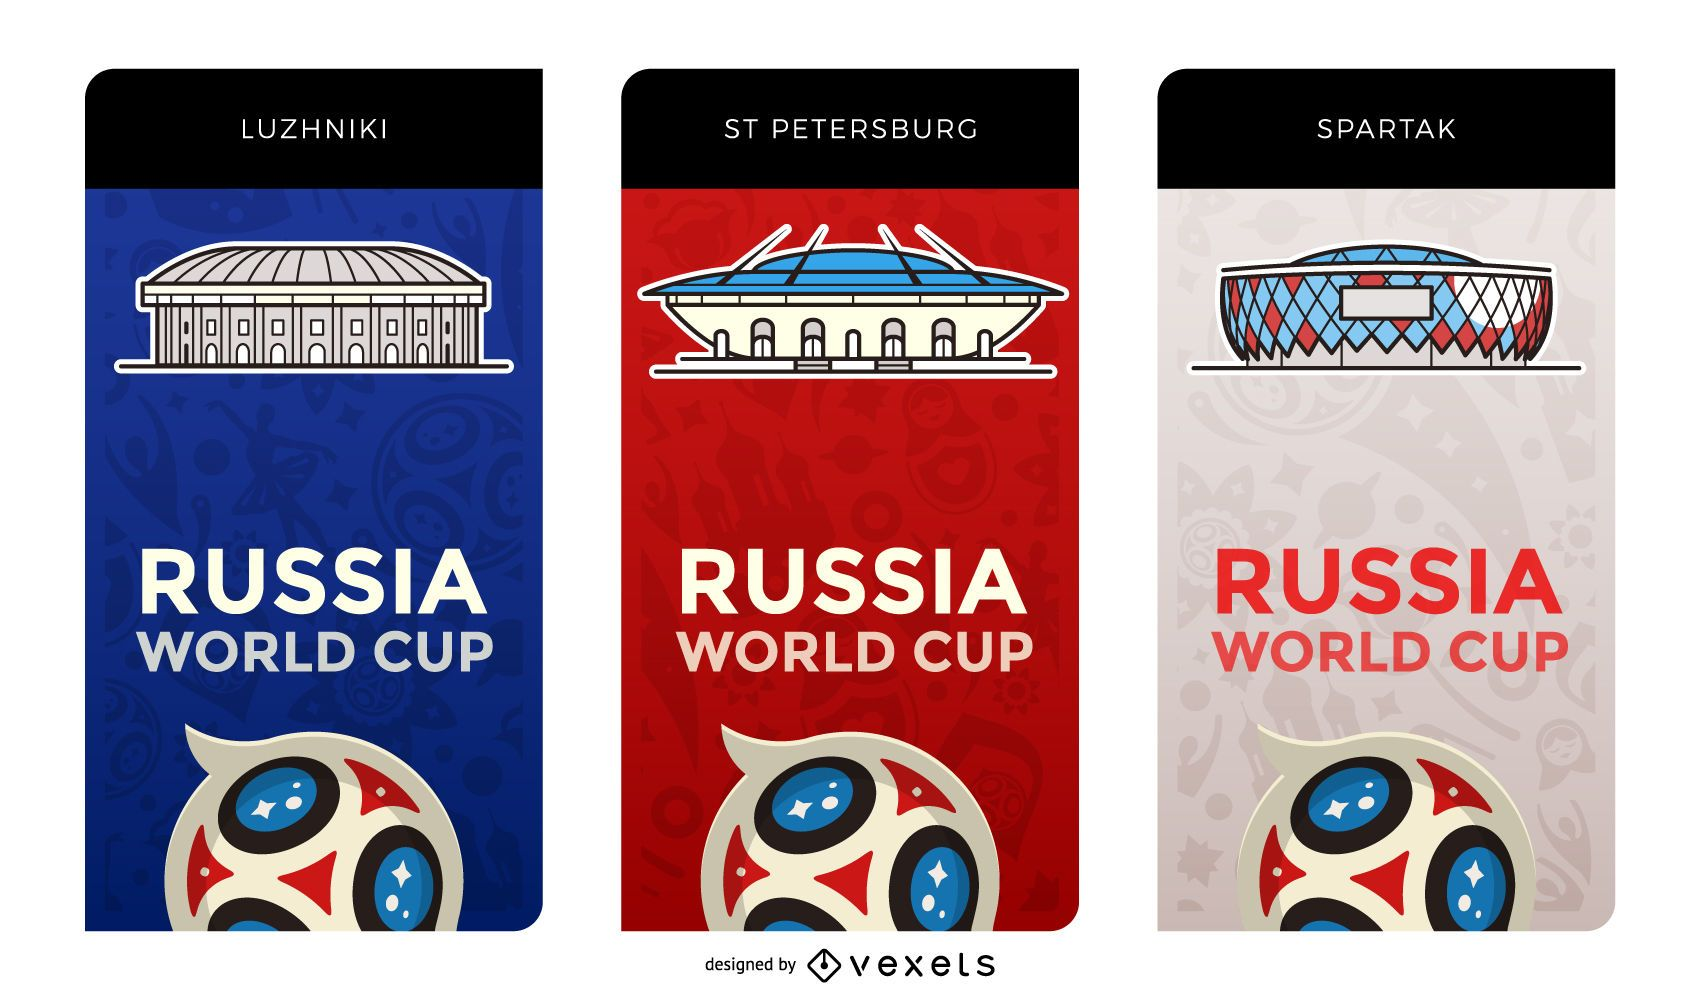 World Cup 2018 stadiums banners